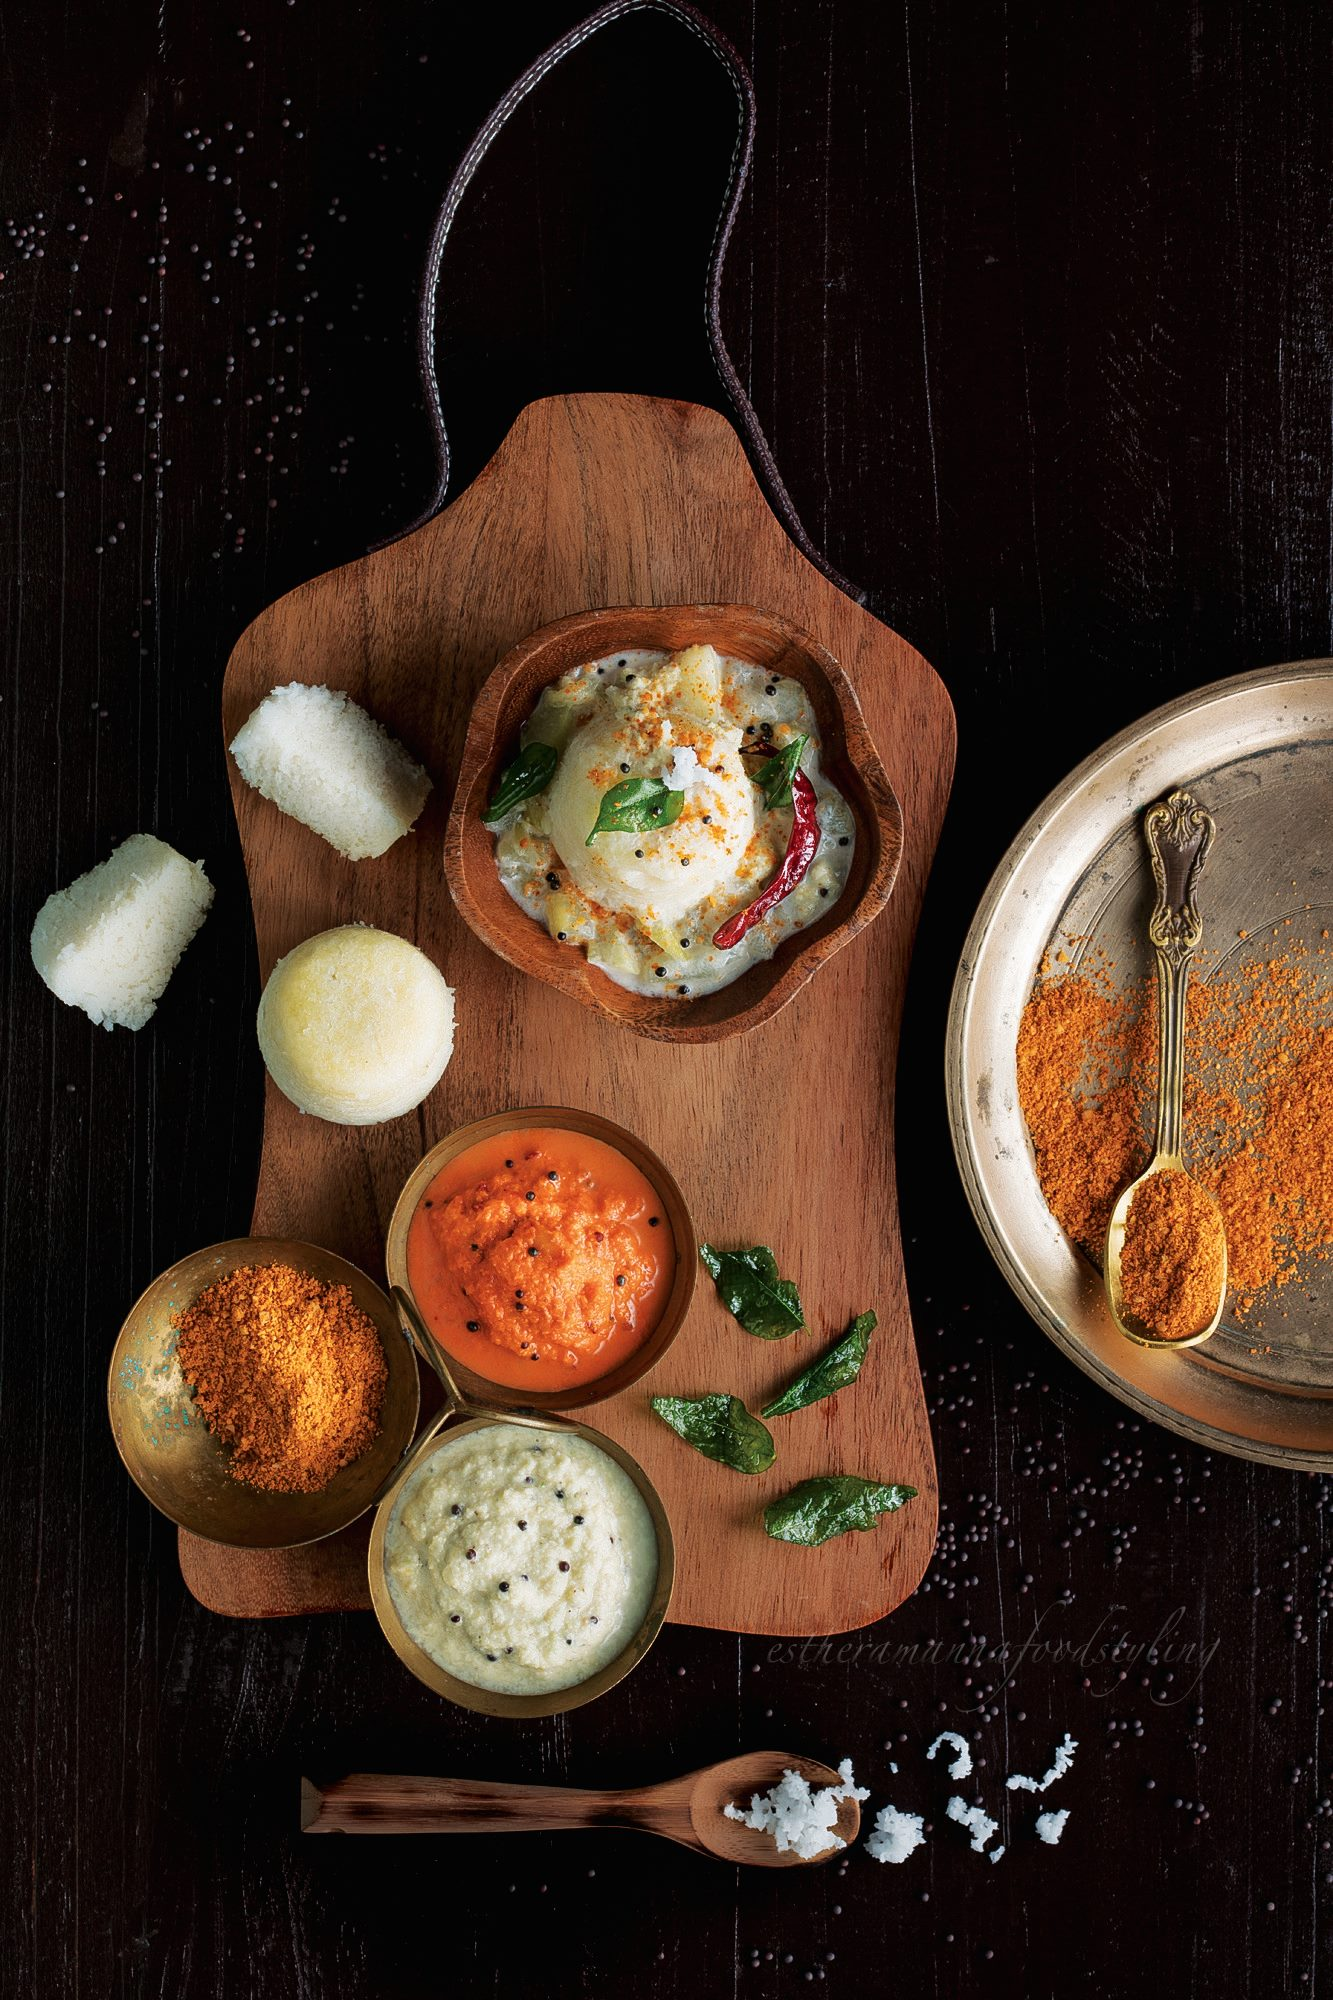 Indian cuisine,Idli, sambar and chutney,deconstructed food styling,foodstylist